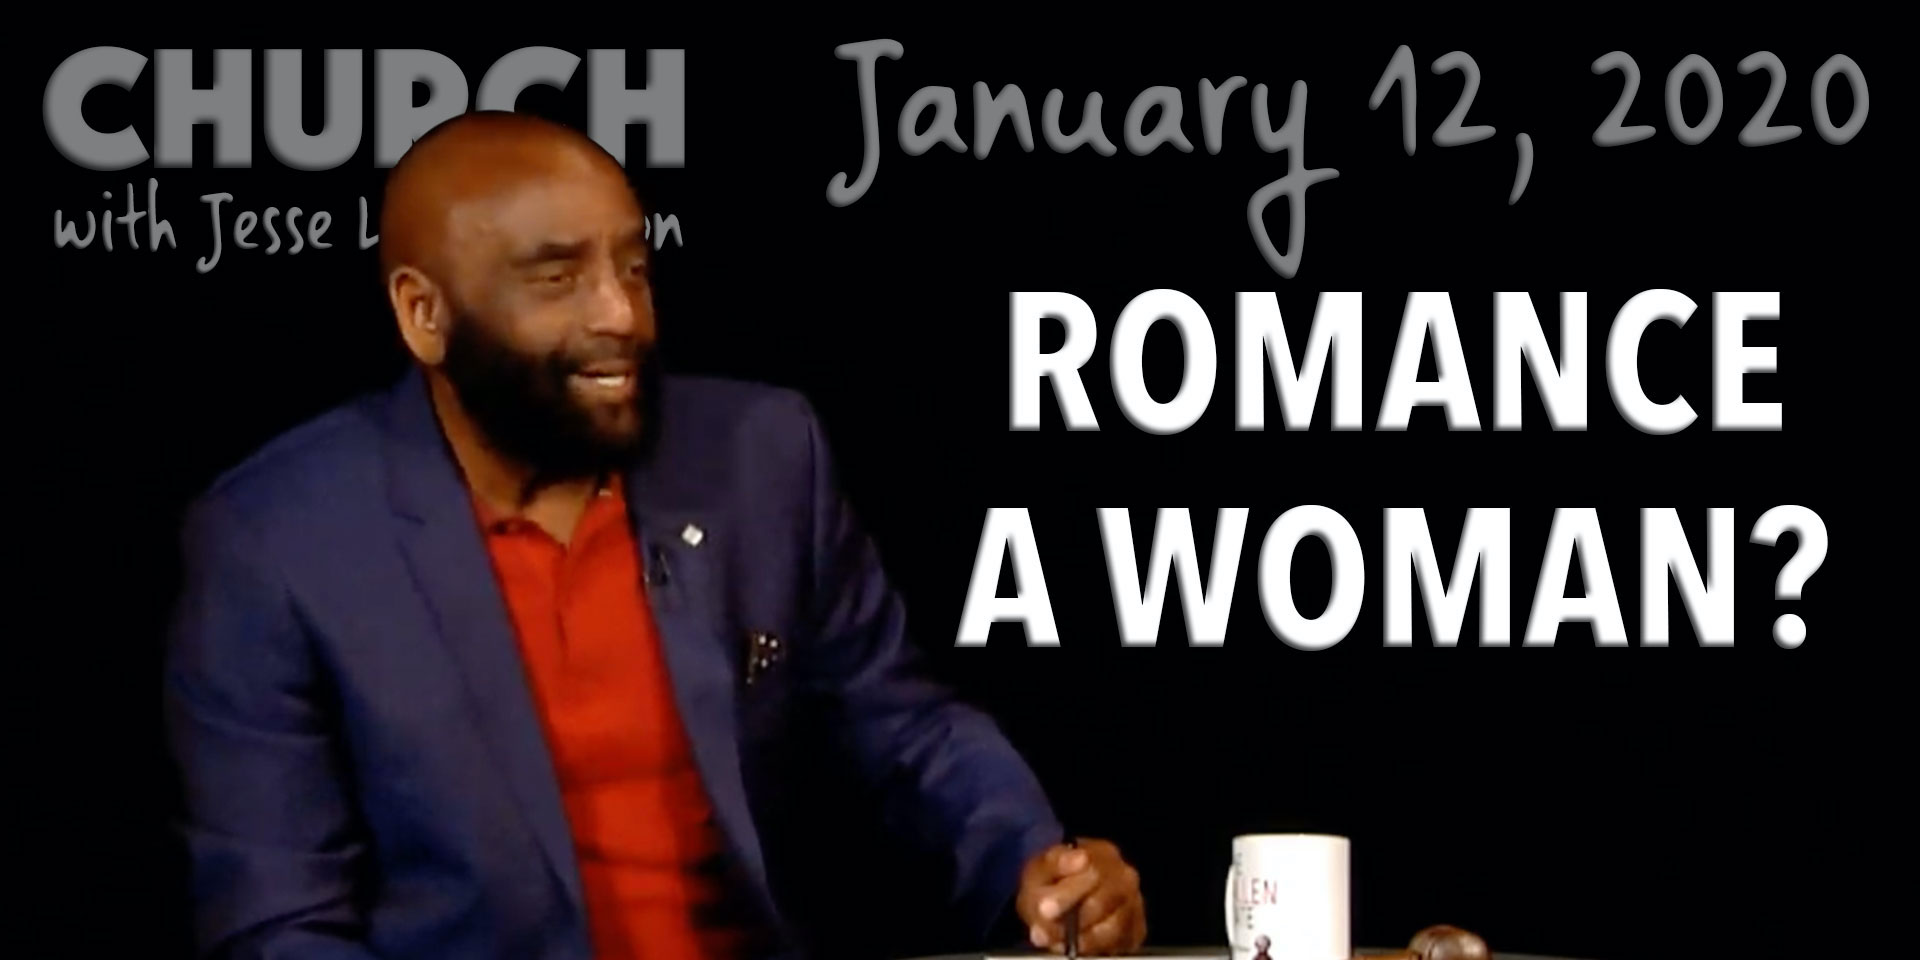 Romance a Woman? (Church 1/12/20)